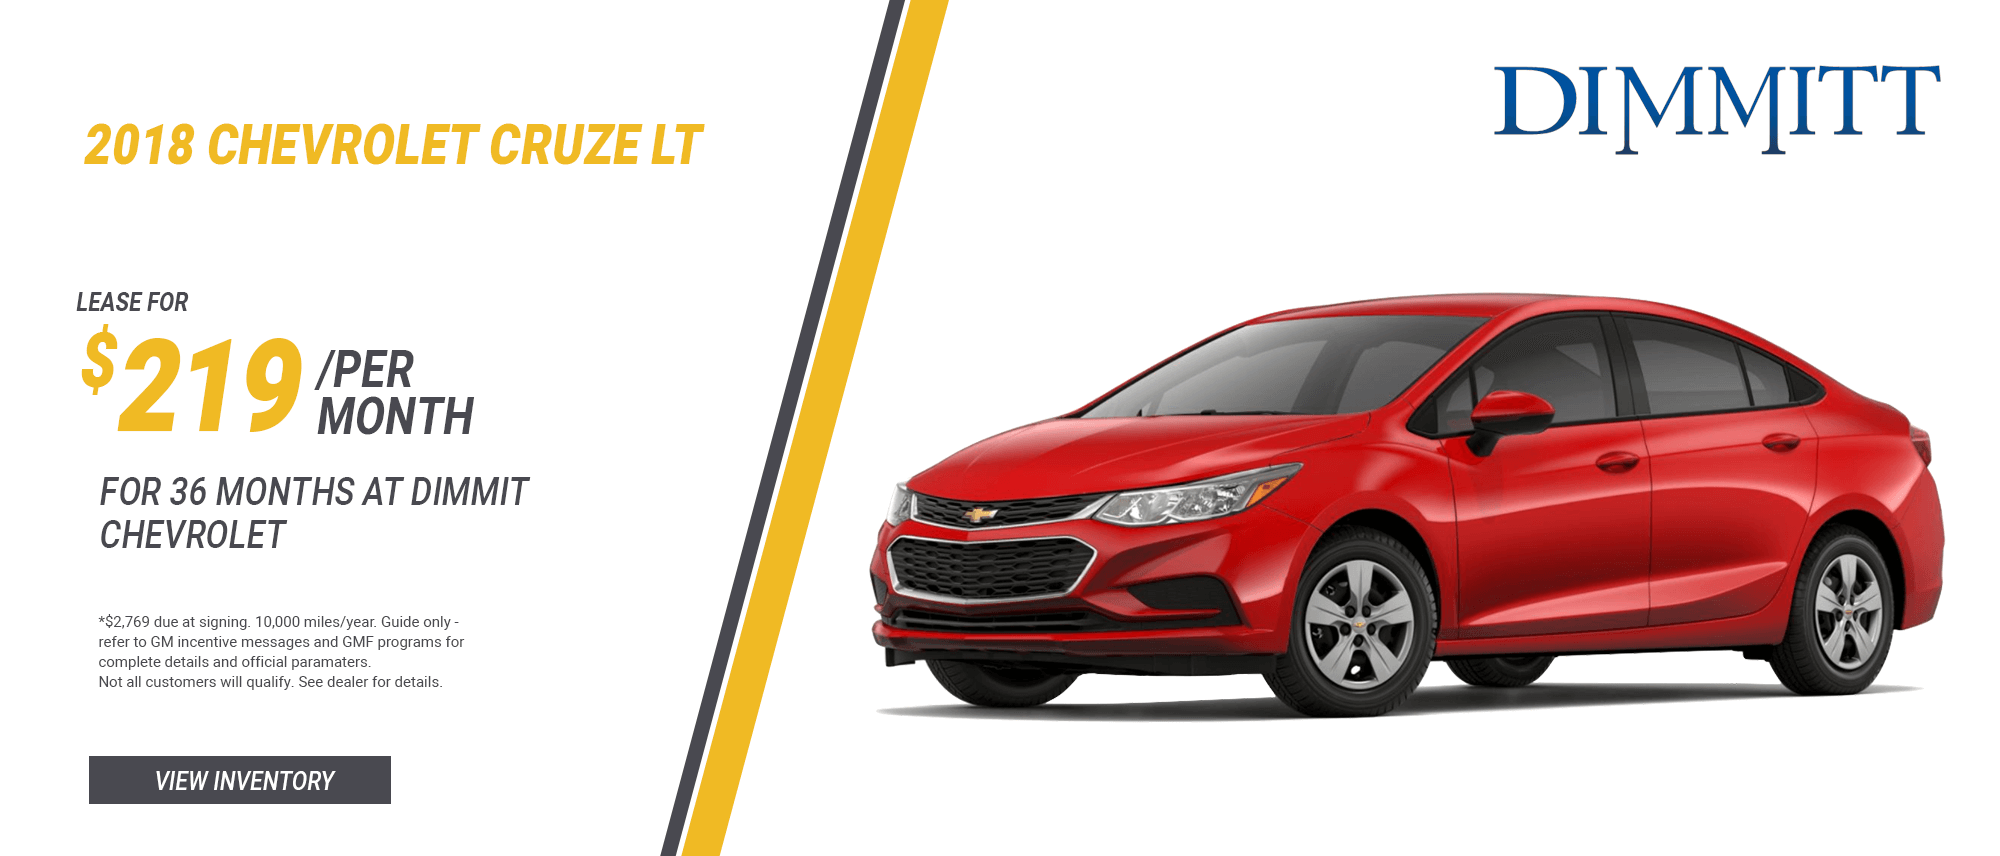 Chevrolet Cruze Repair Manual: BasecoatClearcoat Paint Systems